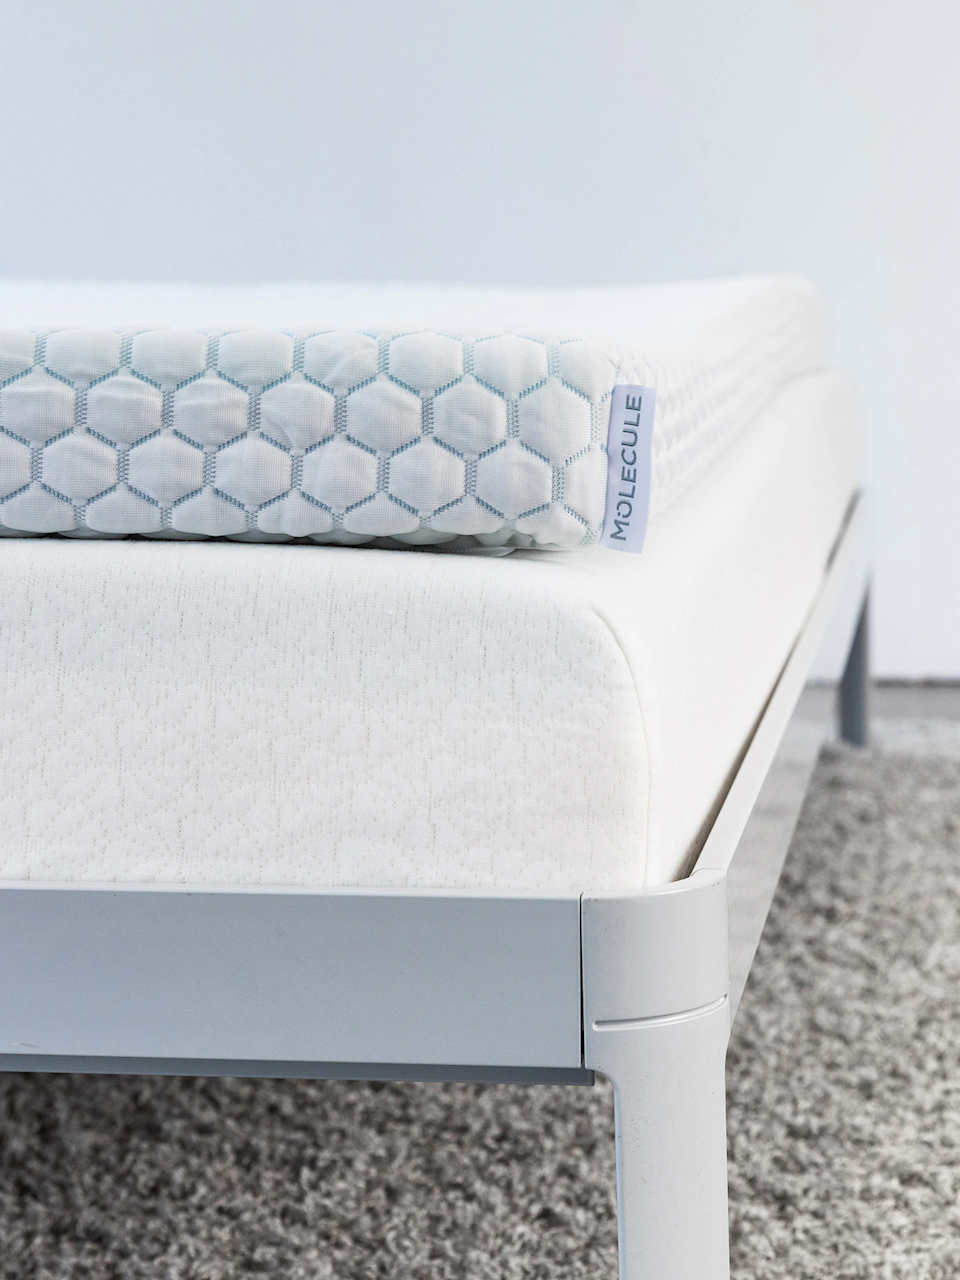 """<h3>MOLECULE Airtec Mattress Topper</h3><br><strong>Best For:</strong> <strong>Pain-Free Sleep</strong><br>This topper is Air-Engineered™ for a recovery-focused comfortable and cooling sleep. It's three unique layers are designed to conform to your body to deliver enhanced pressure relief and support and provides maximum airflow.<br><br><strong>The Hype: 4.5 out of 5 stars</strong><br><br><strong>Sleepers Say:</strong> """"Its hard to believe and even harder to say out loud, but the first morning after sleeping on the MOLECULE Airtec mattress topper was the day everything changed! I woke up pain-free and I'm not kidding nor lying! I drive for a living and I'm in a constant back and hip pain. When I first stood up from bed 'I didn't recognize the feeling…The feeling of nothing""""! For the first time in 20+ years I didn't hurt."""" <em>– Cathy, MOLECULE Reviewer</em><br><br><em>Shop </em><strong><em><a href=""""https://www.verishop.com/product/p4471416225815"""" rel=""""nofollow noopener"""" target=""""_blank"""" data-ylk=""""slk:Molecule"""" class=""""link rapid-noclick-resp"""">Molecule</a></em></strong><br><br><br><strong>Molecule</strong> AirTEC Mattress Topper, $, available at <a href=""""https://go.skimresources.com/?id=30283X879131&url=https%3A%2F%2Fwww.onmolecule.com%2Fproducts%2Fmolecule-airtec-mattress-topper"""" rel=""""nofollow noopener"""" target=""""_blank"""" data-ylk=""""slk:Molecule"""" class=""""link rapid-noclick-resp"""">Molecule</a>"""